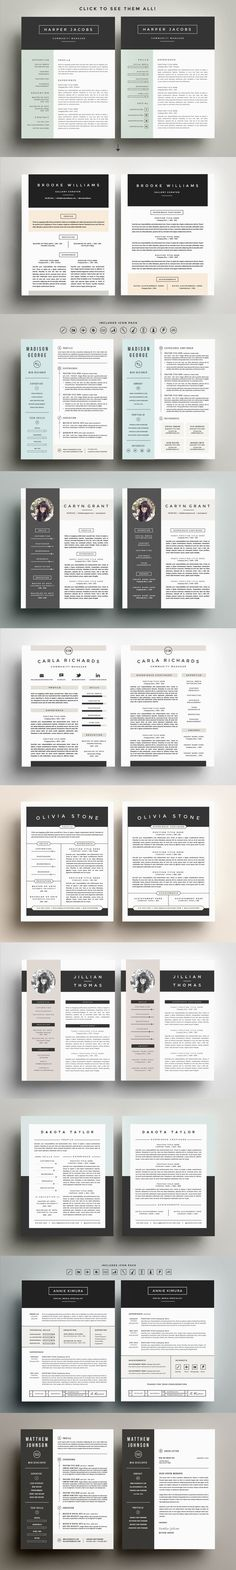 skills highlight resume template resume templates and samples pinterest creative resume templates